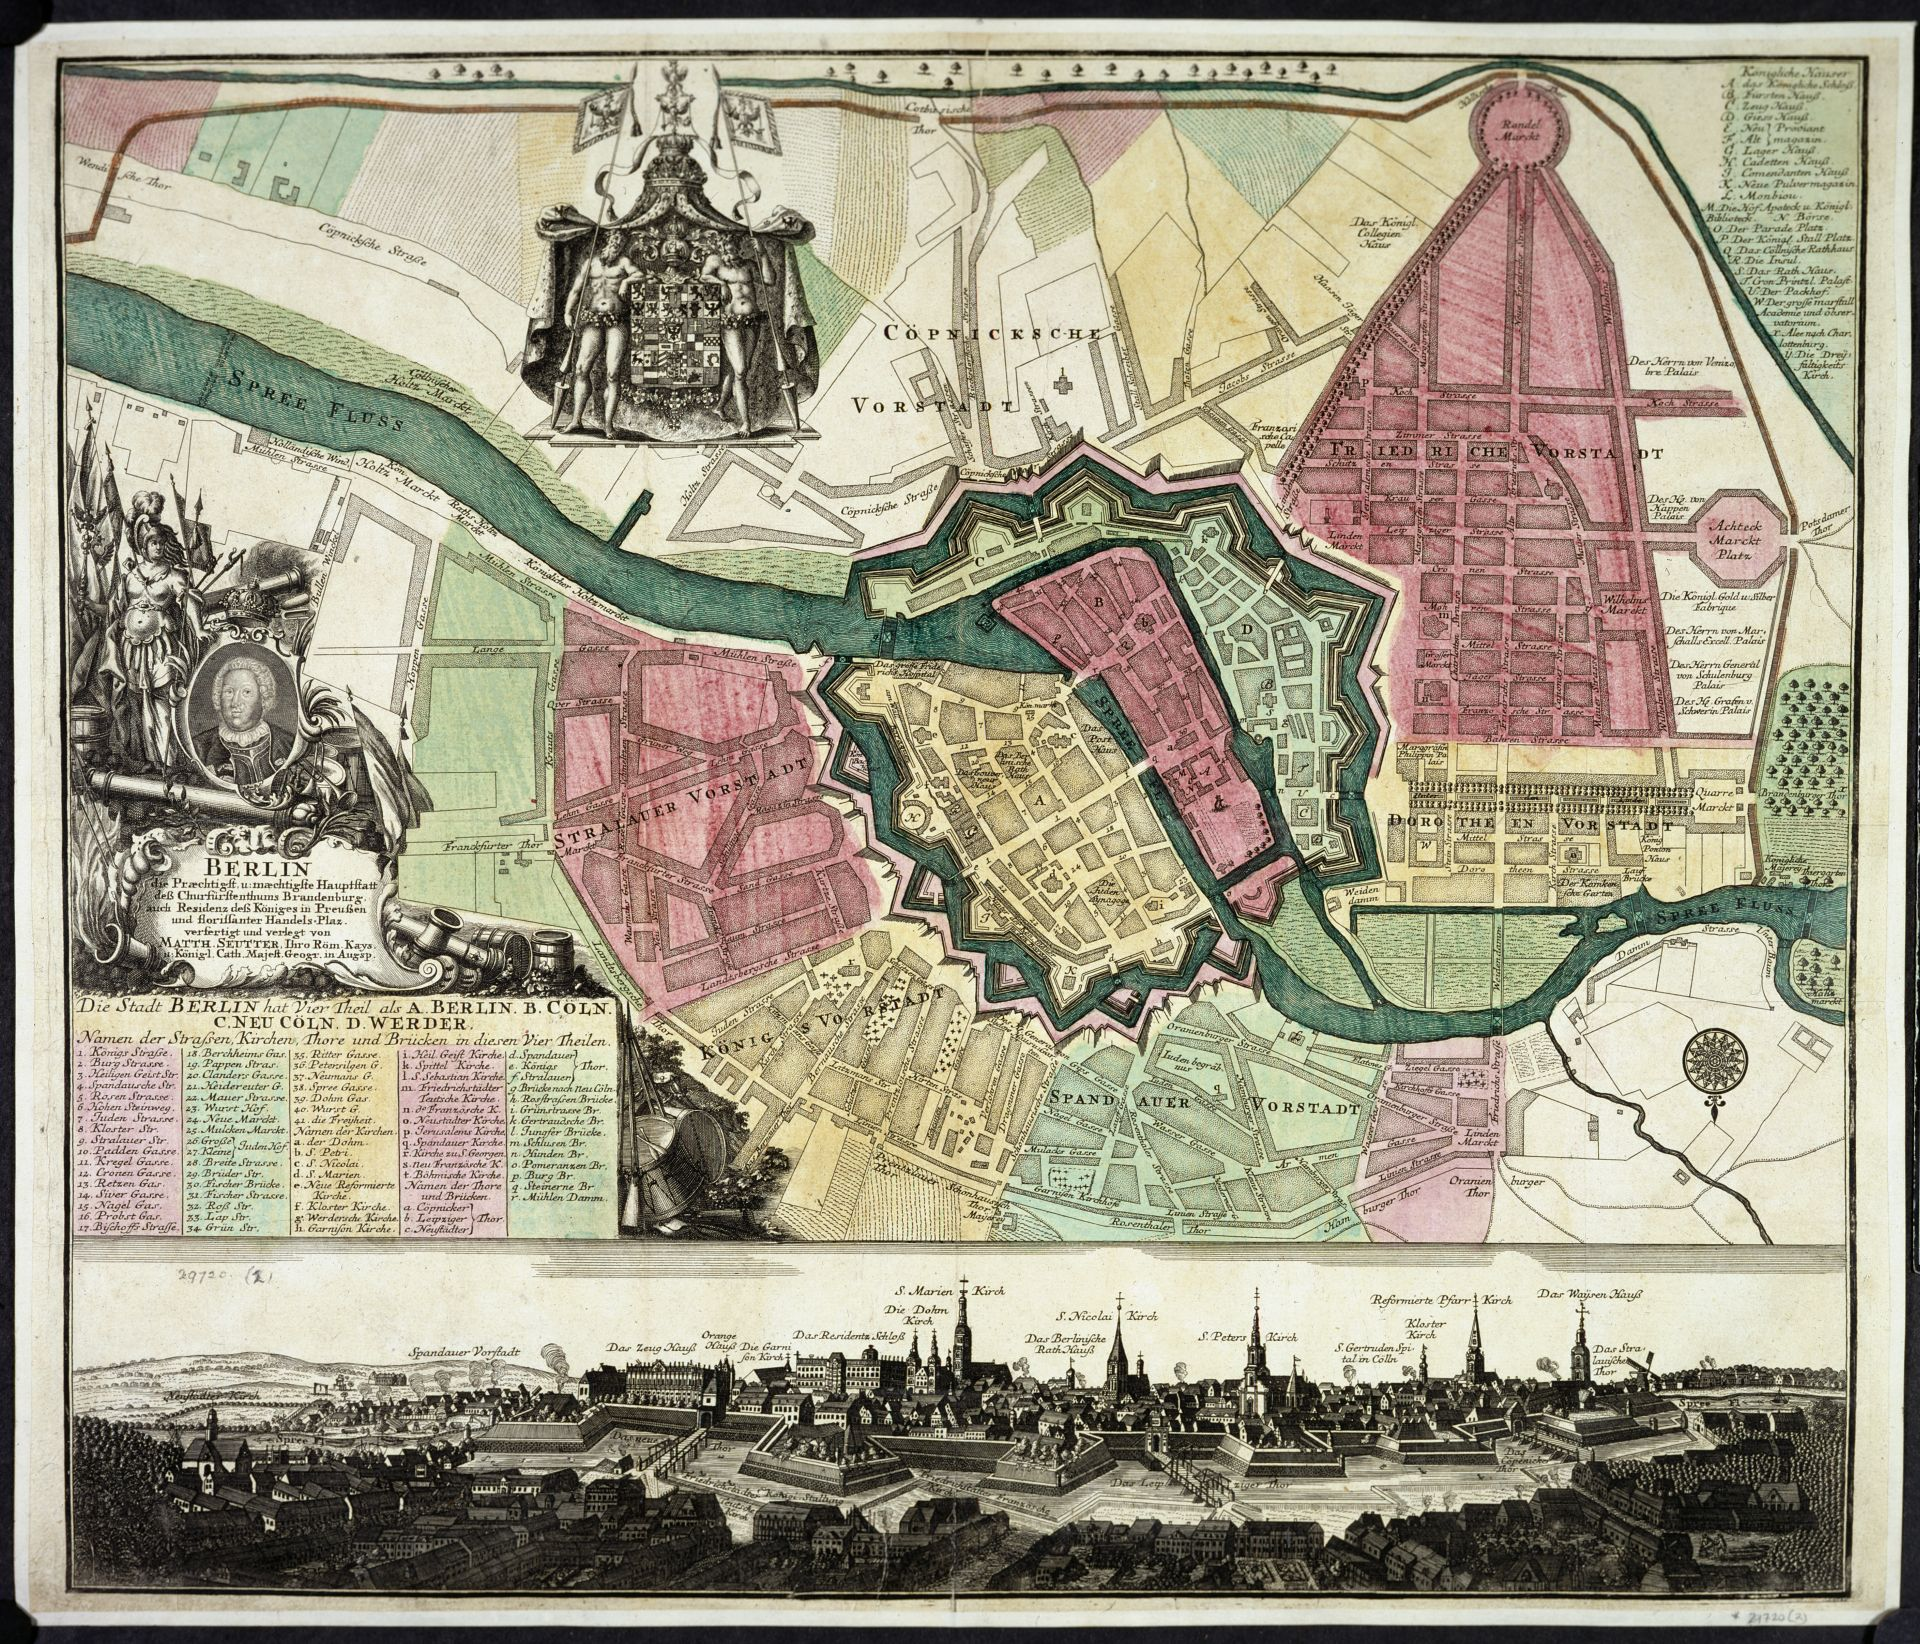 The baroque city: town plans of the 18th century | British Library